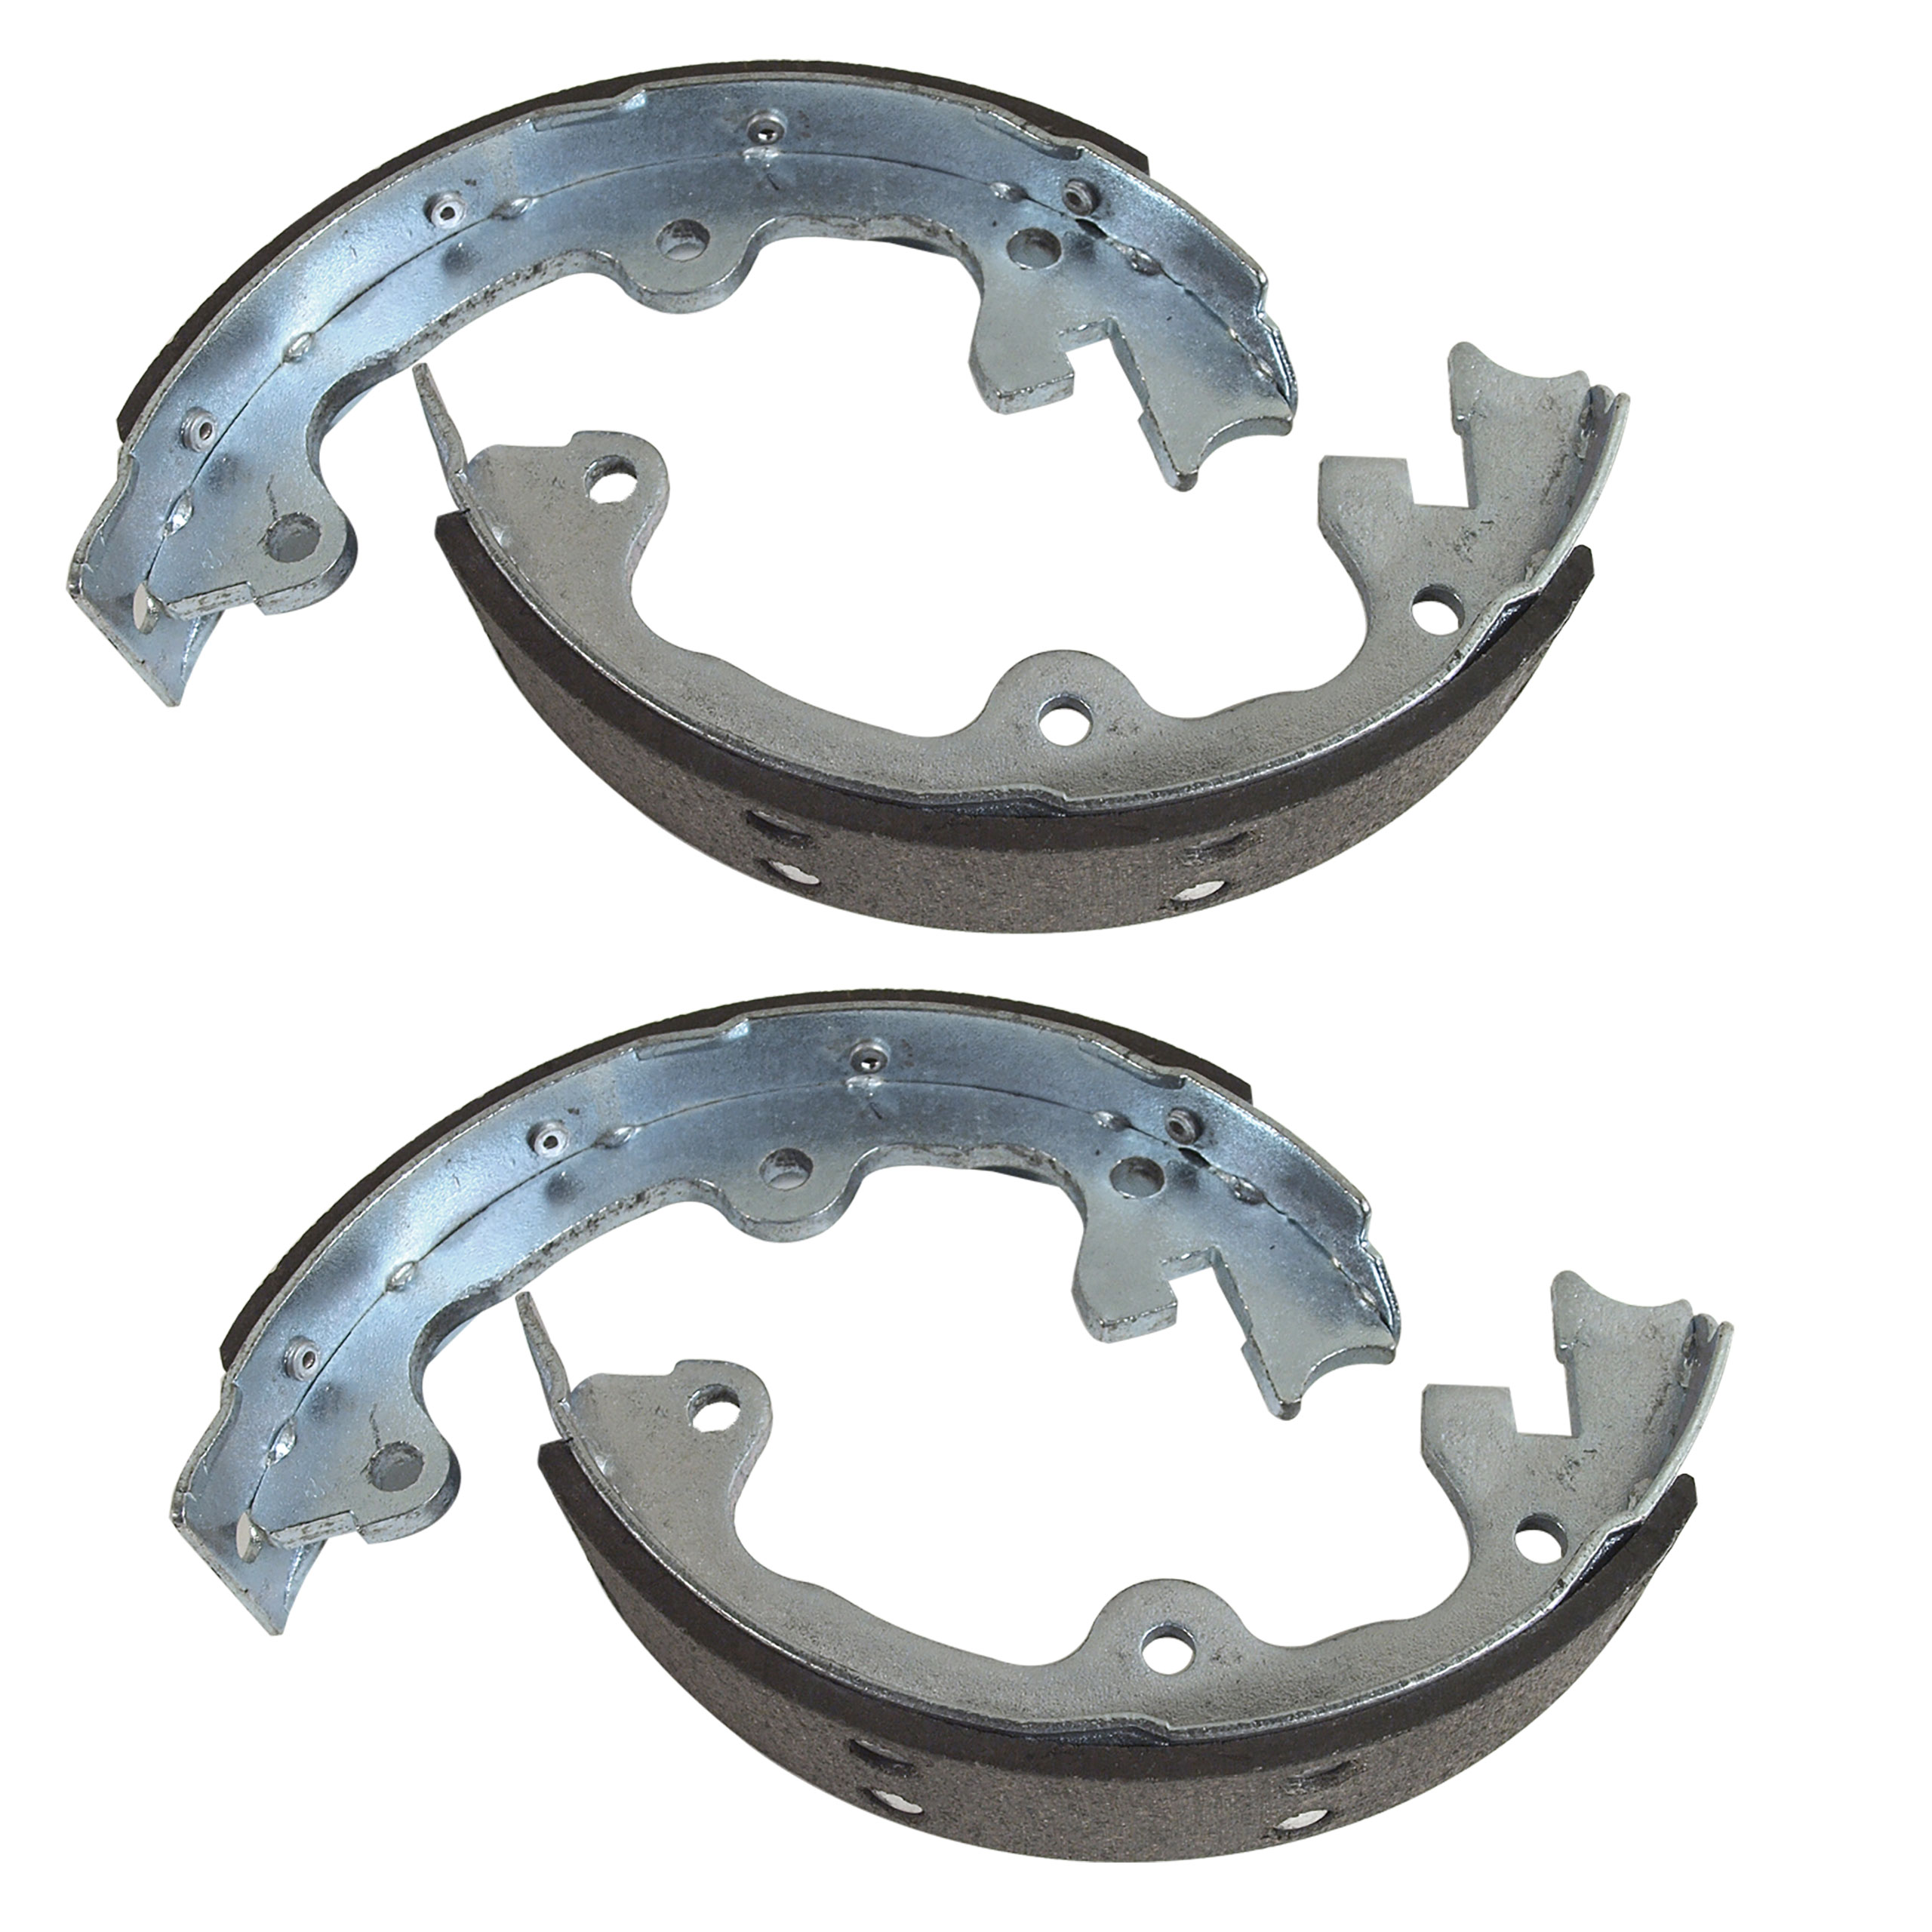 Corvette America 1965-1982 Chevrolet Corvette Park Brake Shoes. Reproduction - 4 Piece Set